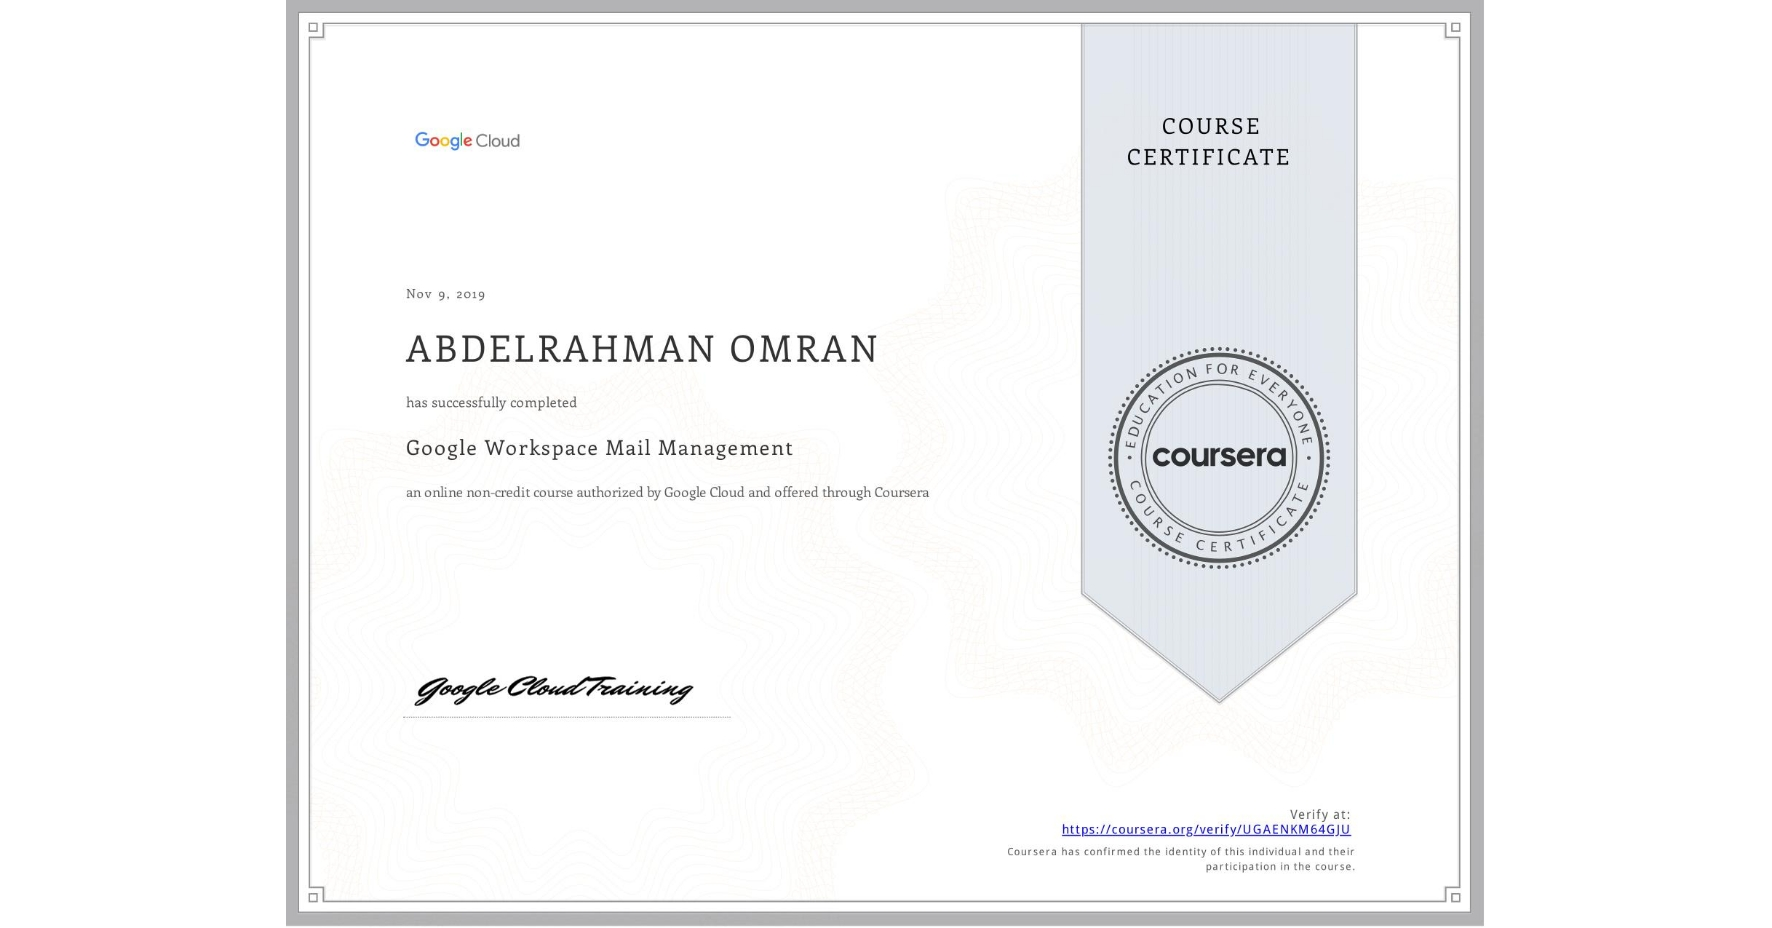 View certificate for ABDELRAHMAN OMRAN, Google Workspace Mail Management, an online non-credit course authorized by Google Cloud and offered through Coursera